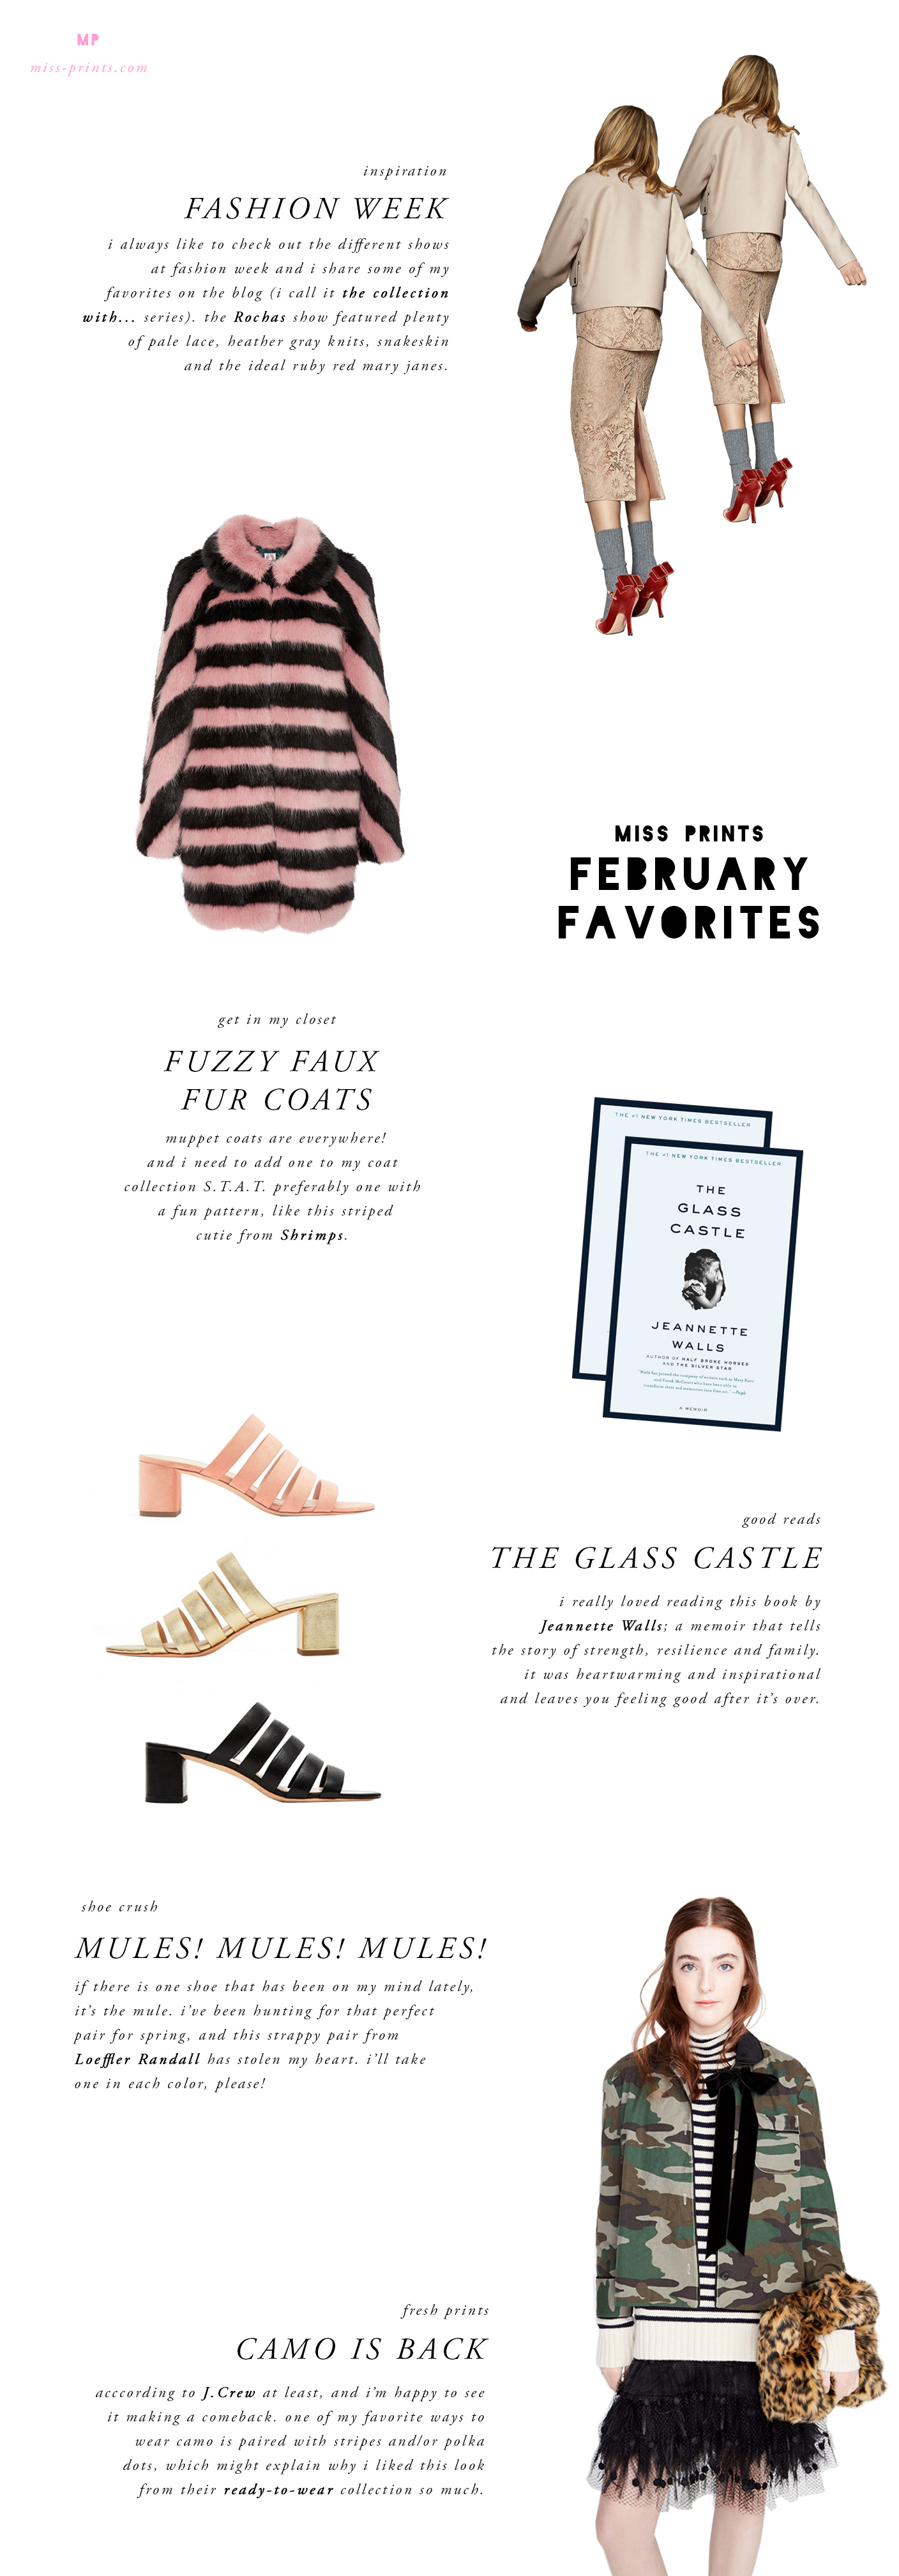 february favorites from @themissprints